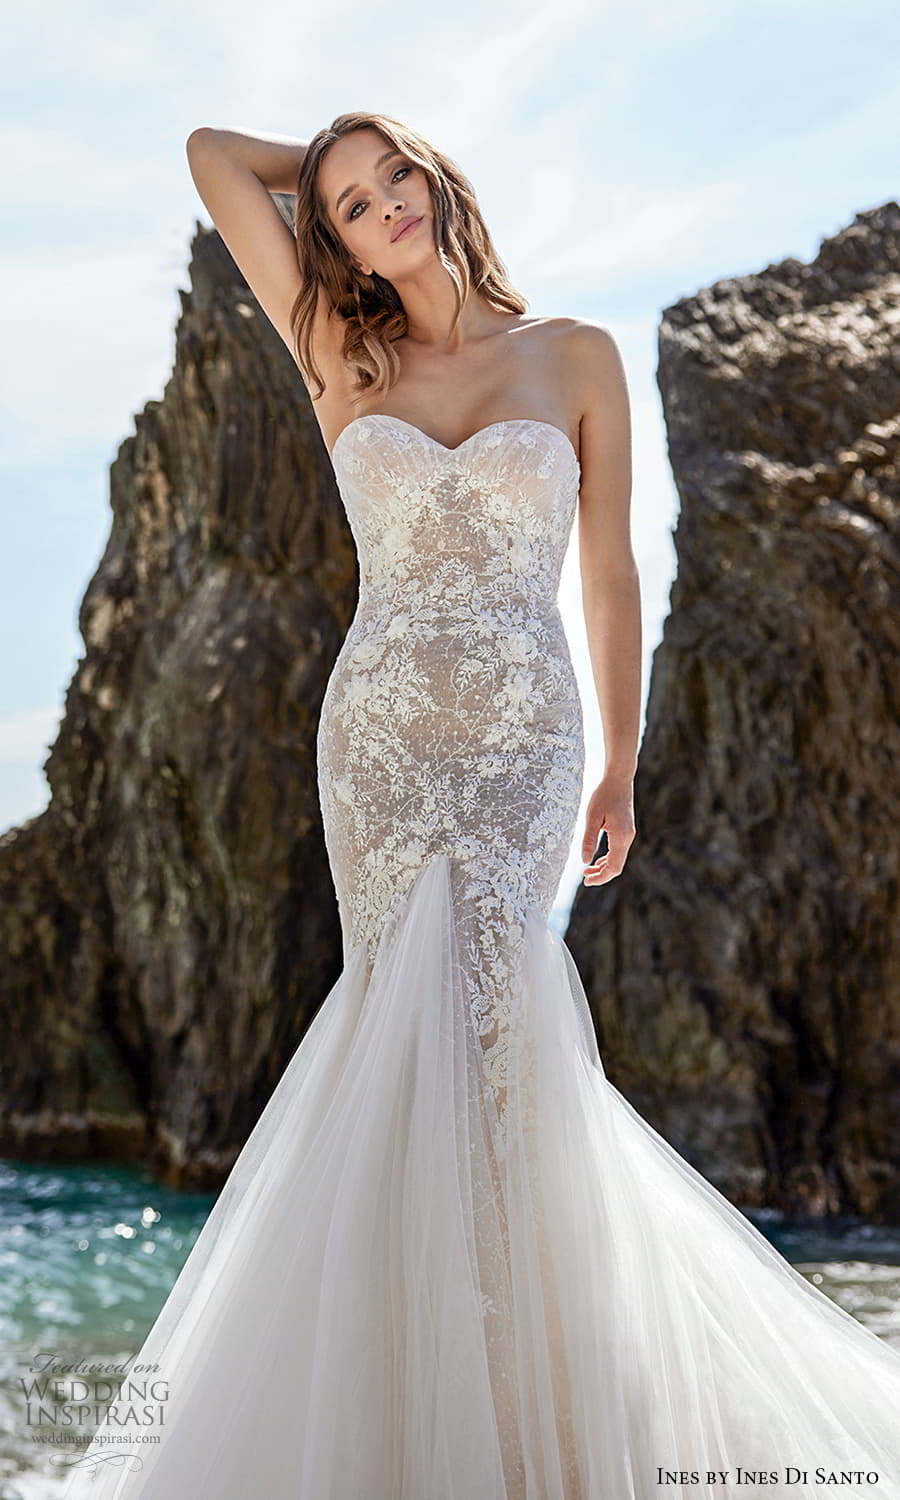 ines ines di santo spring 2022 bridal strapless sweetheart neckline embellished bodice fit flare mermaid wedding drss chapel train (6) zv